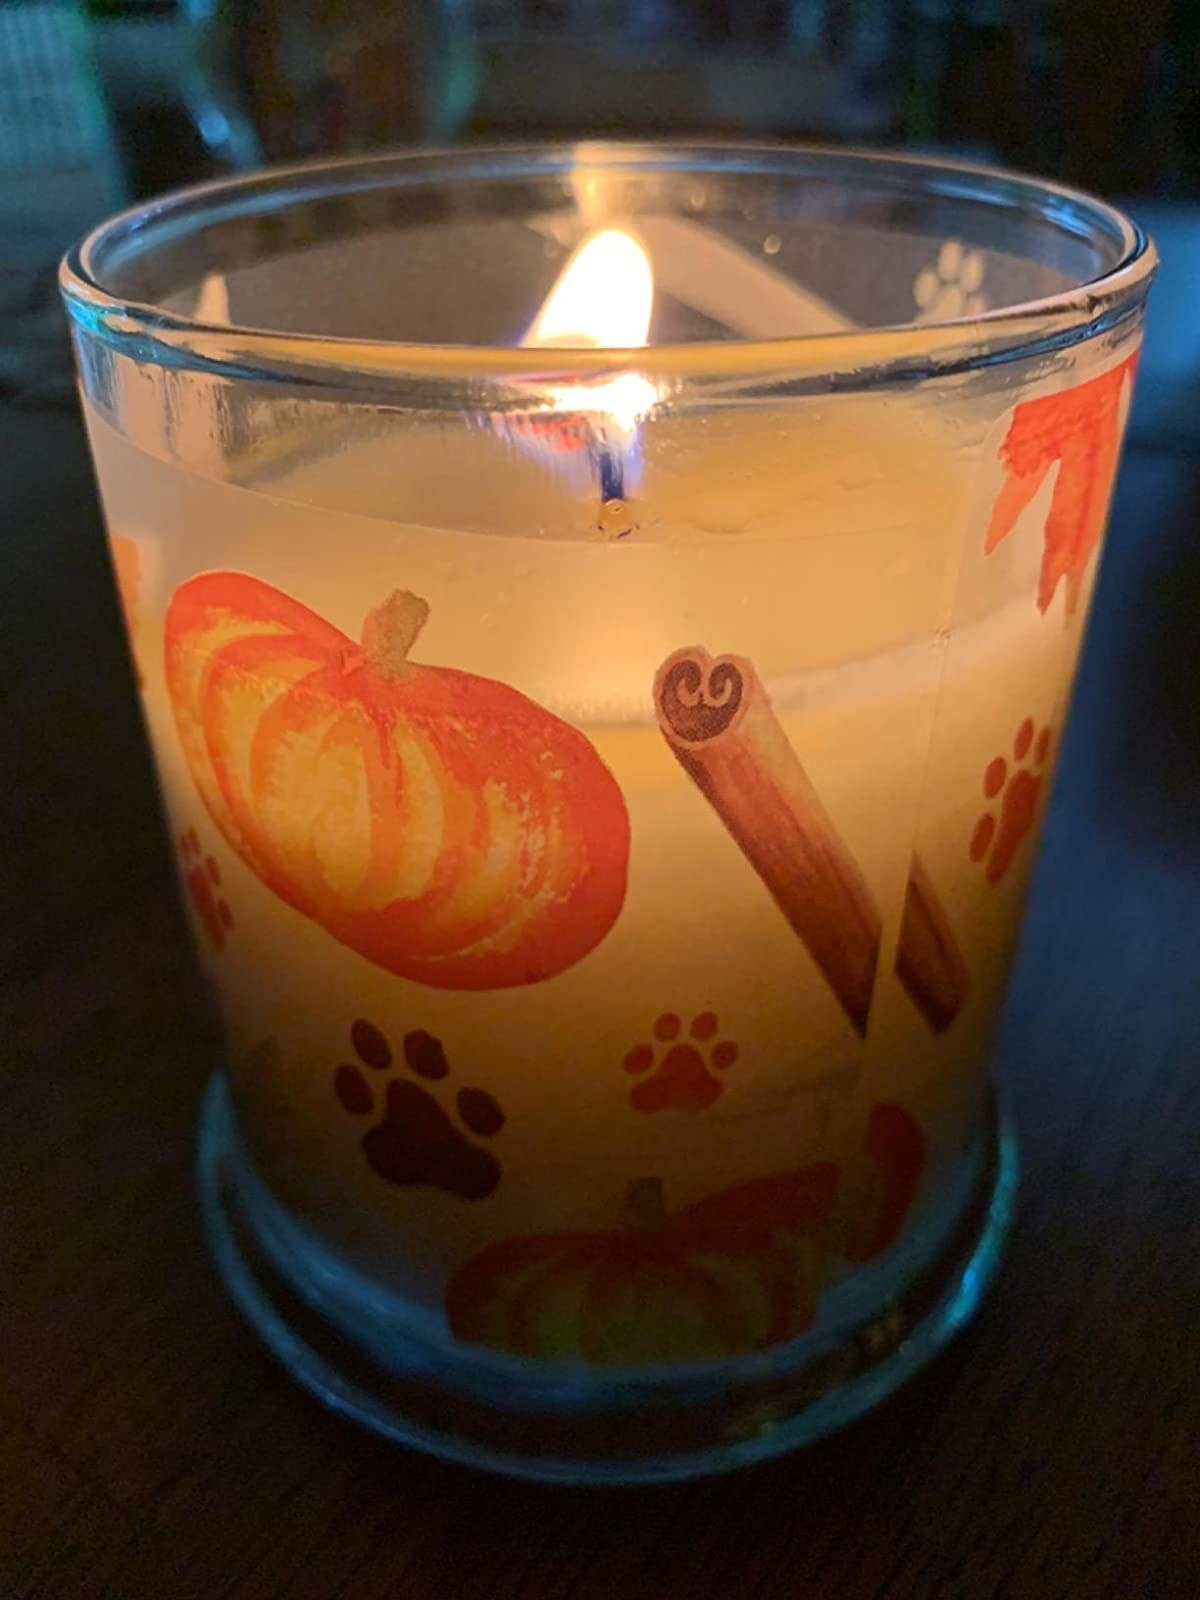 The candle, in pumpkin scent